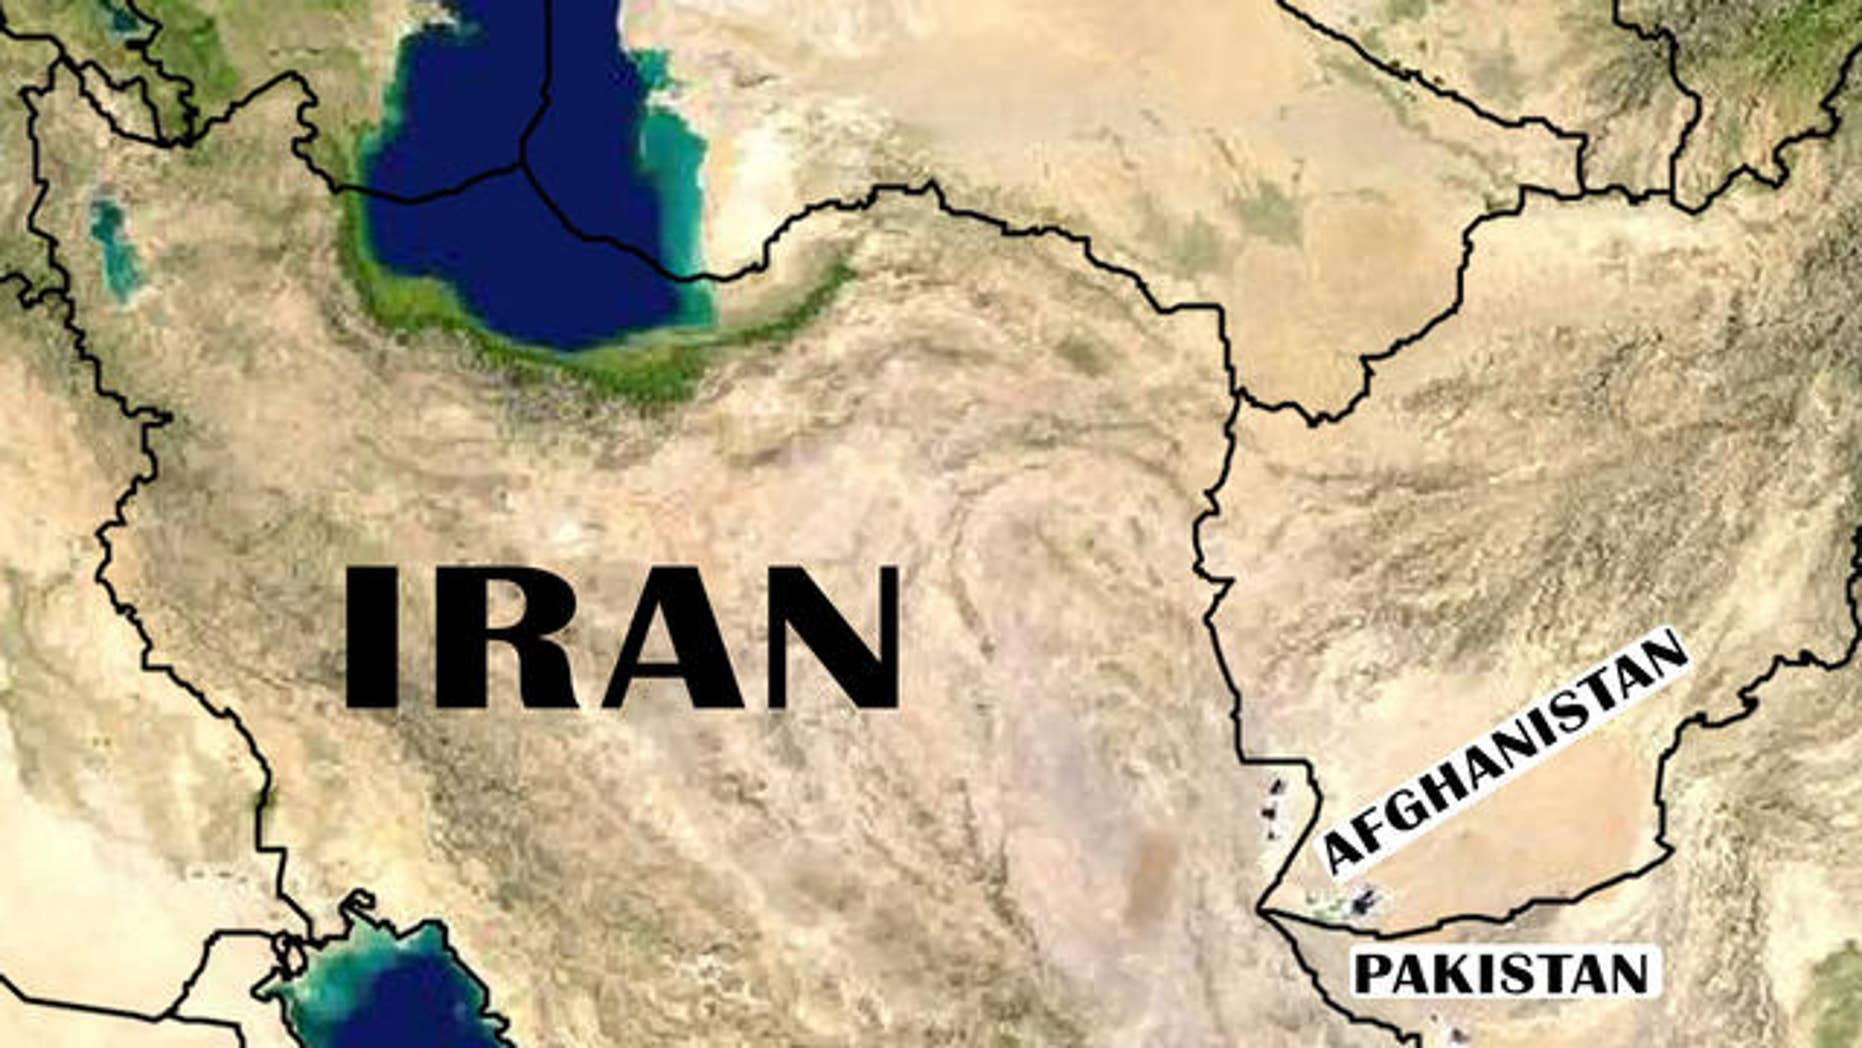 At least three dead in bomb attack in Iran's Chabahar